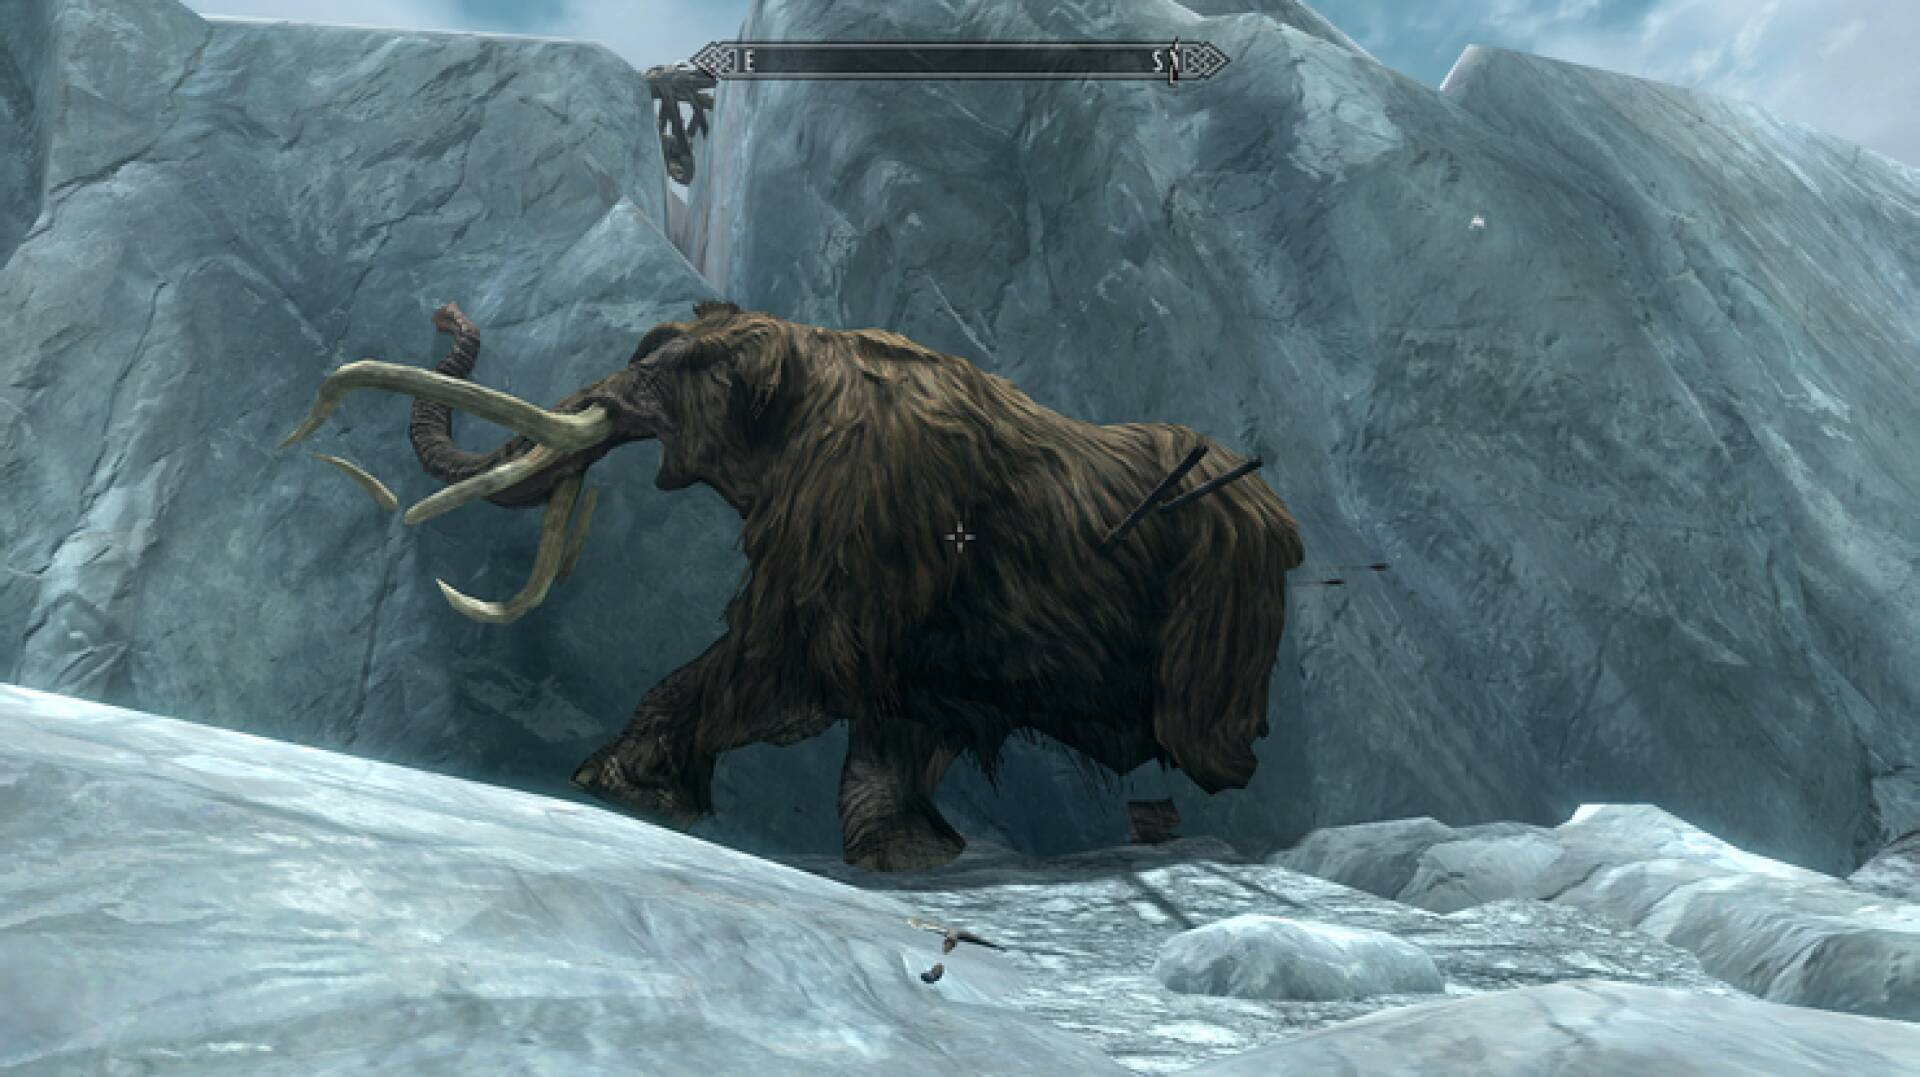 Skyrim, a mysterious creature found frozen in the ice